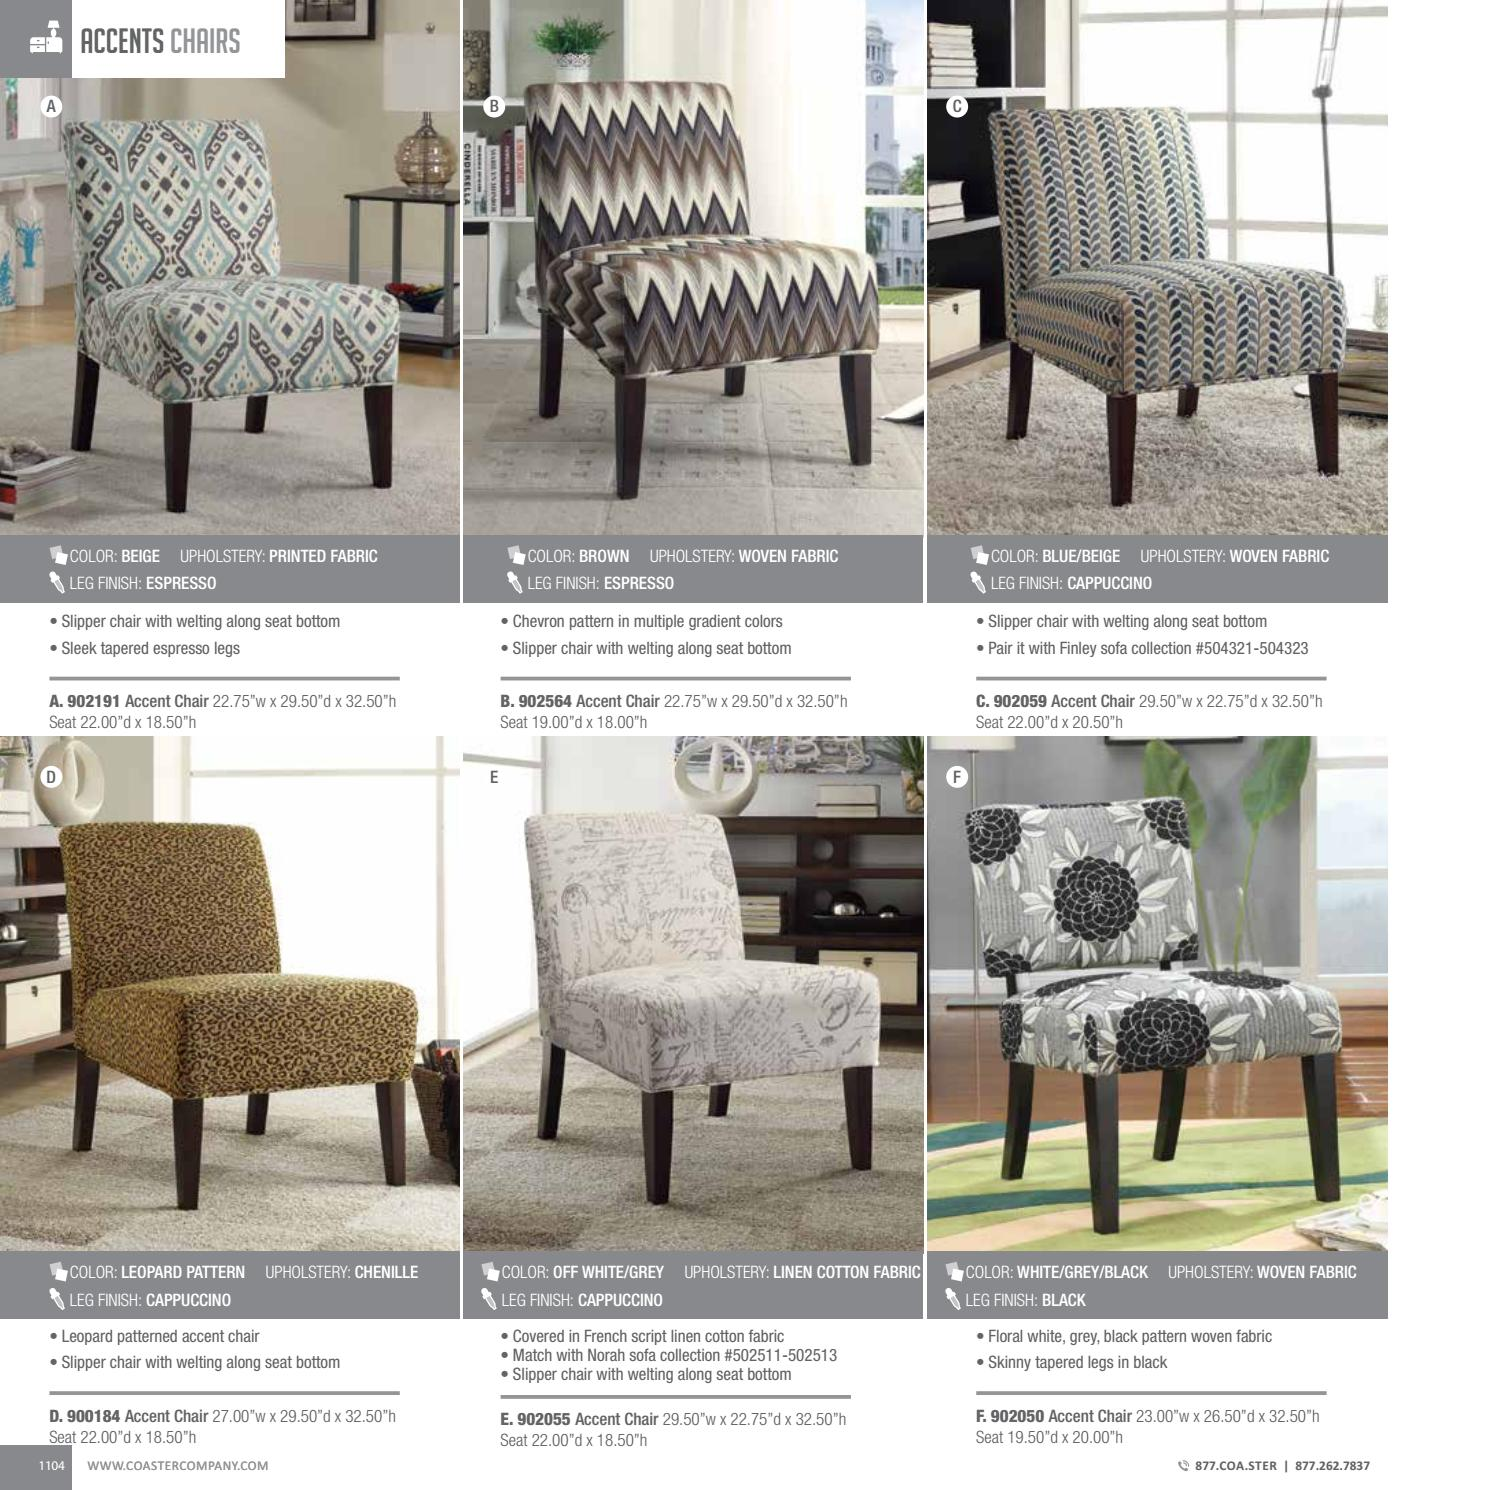 Tremendous Muebles De Oficina 2018 By Jaimerodela Issuu Ocoug Best Dining Table And Chair Ideas Images Ocougorg